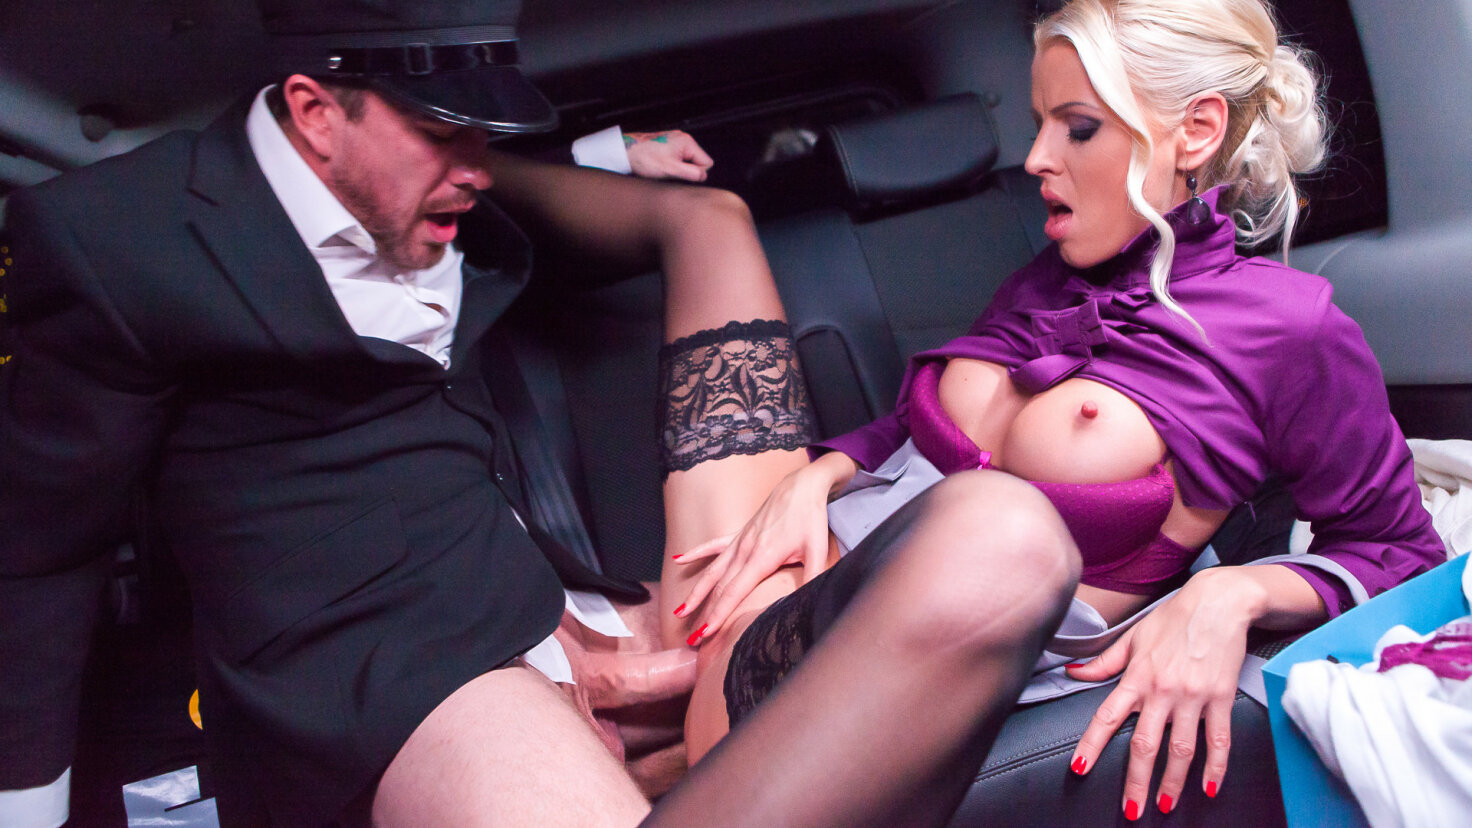 Swedish babe Lynna Nilsson fucks in the backseat of the car on Christmas